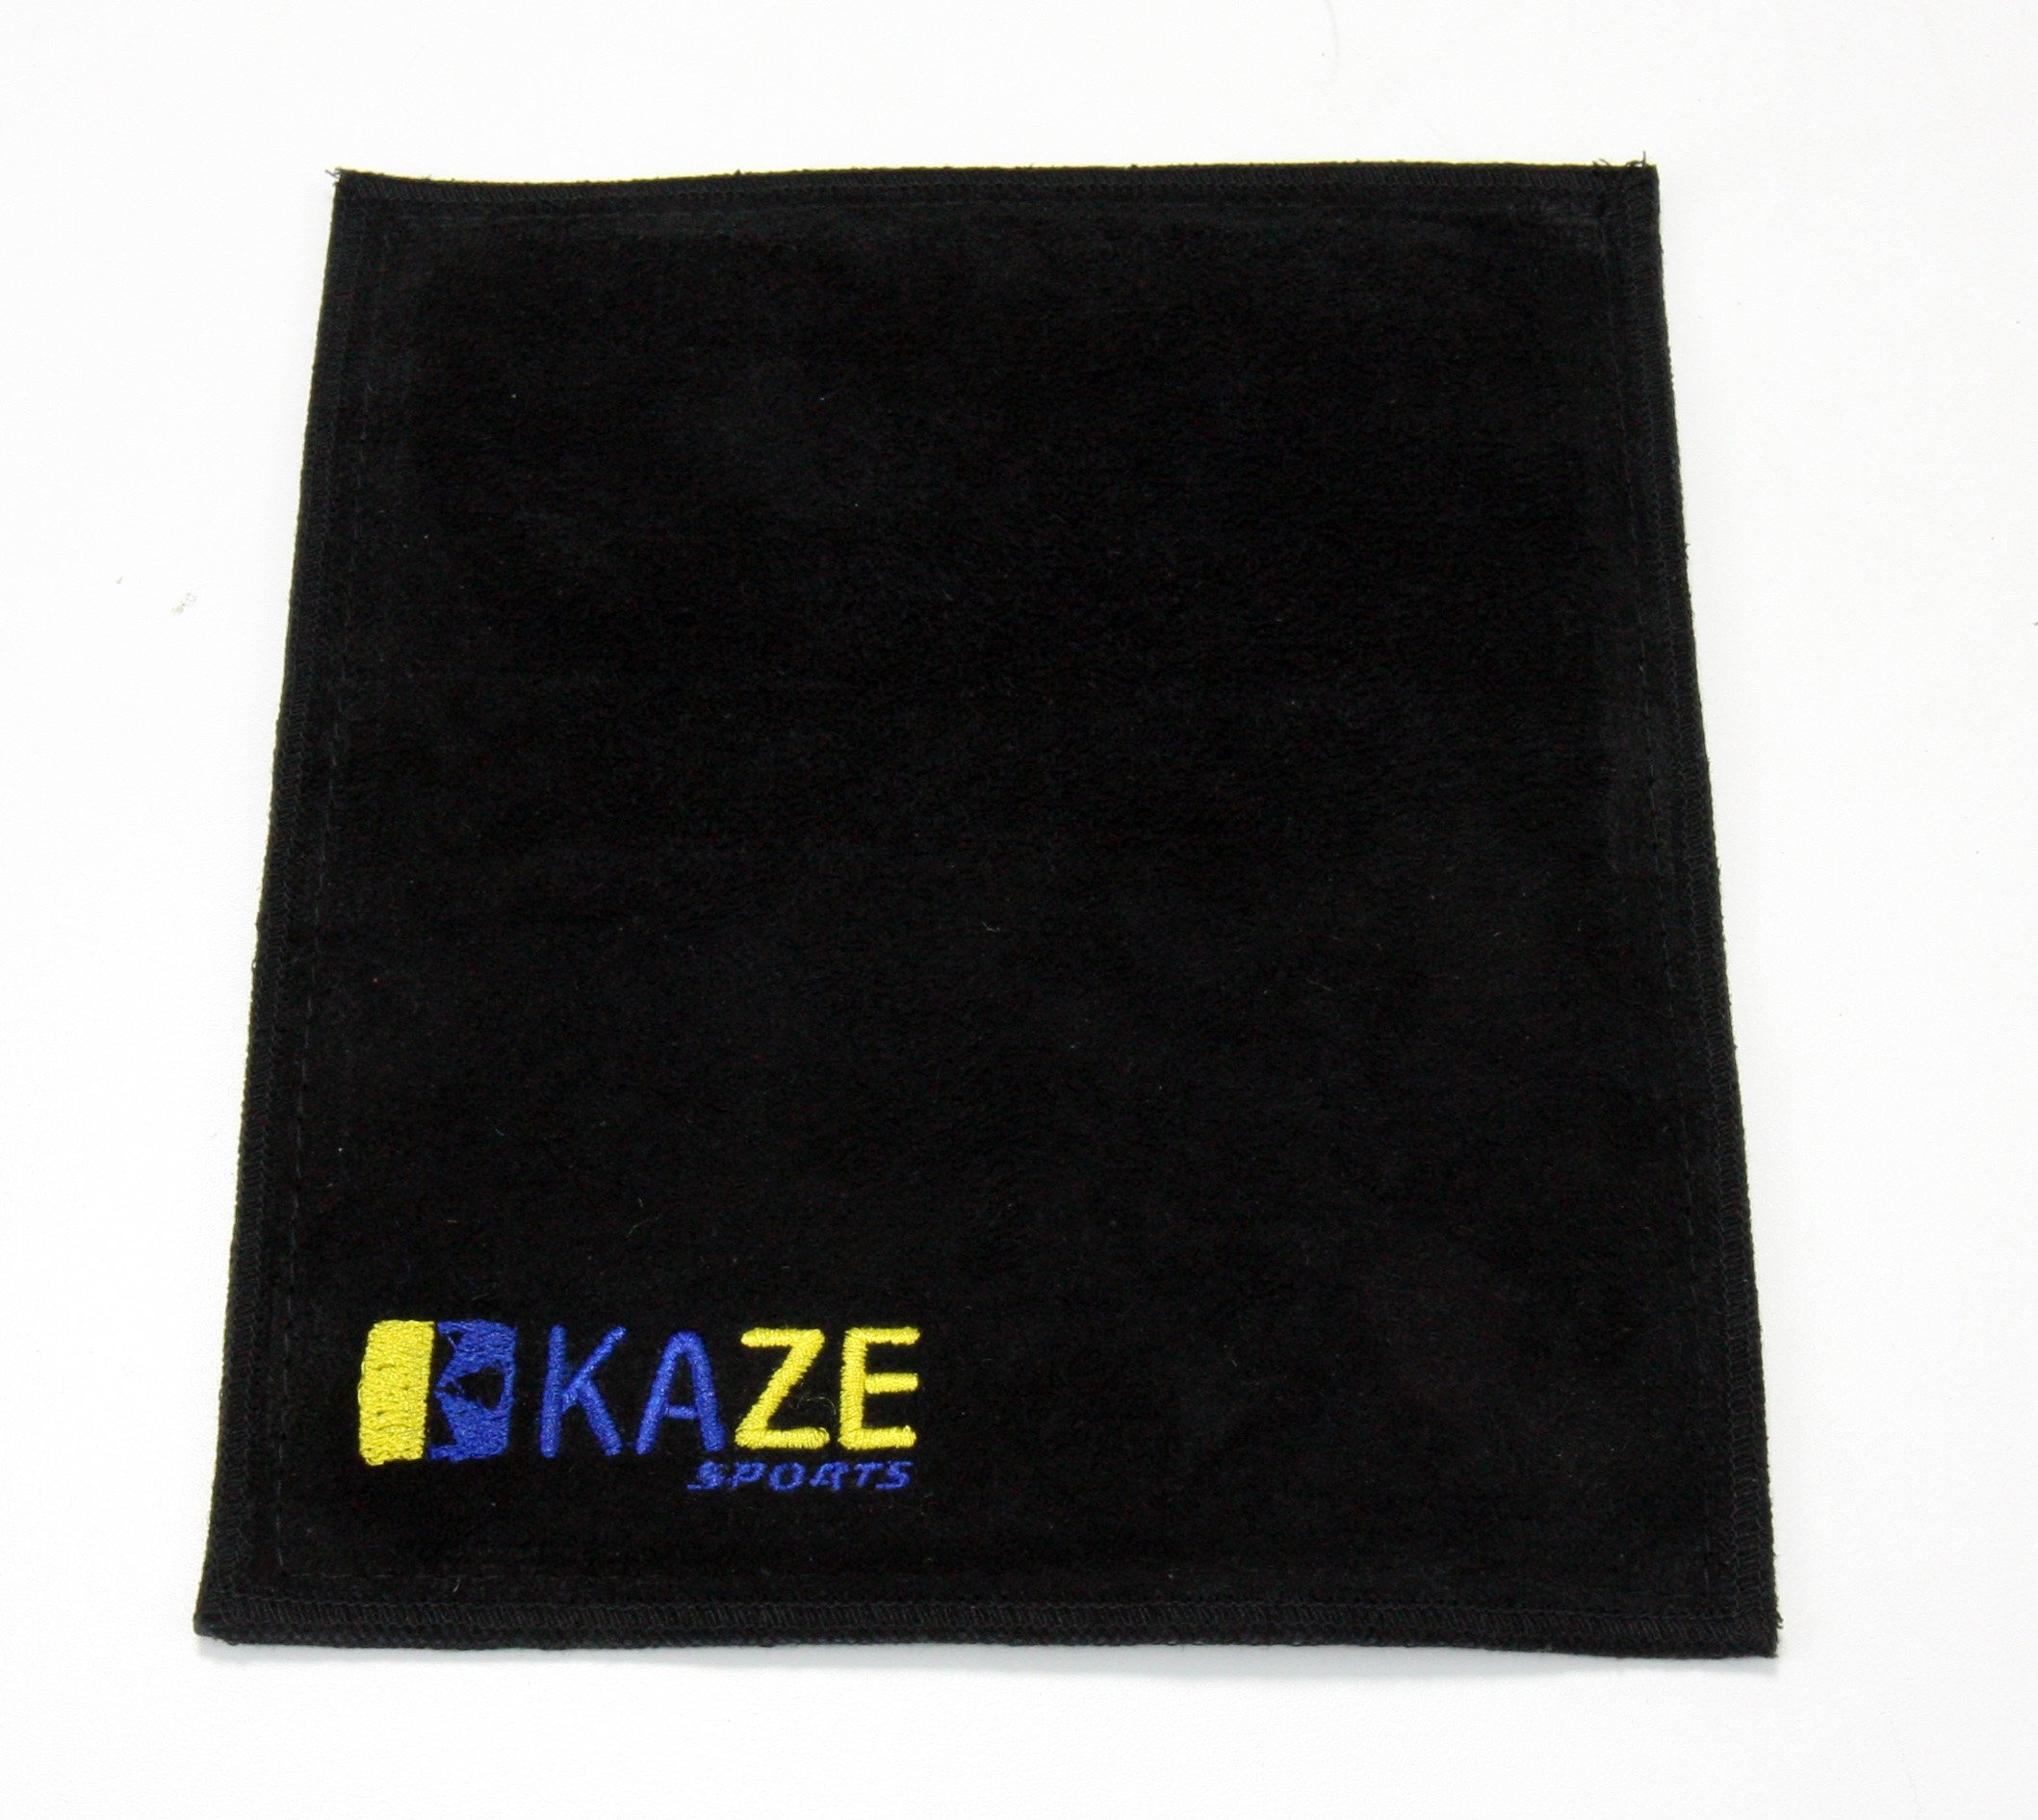 KAZE SPORTS Premium Leather Shammy Pad Bowling Ball Cleaning Towel (1) by KAZE SPORTS